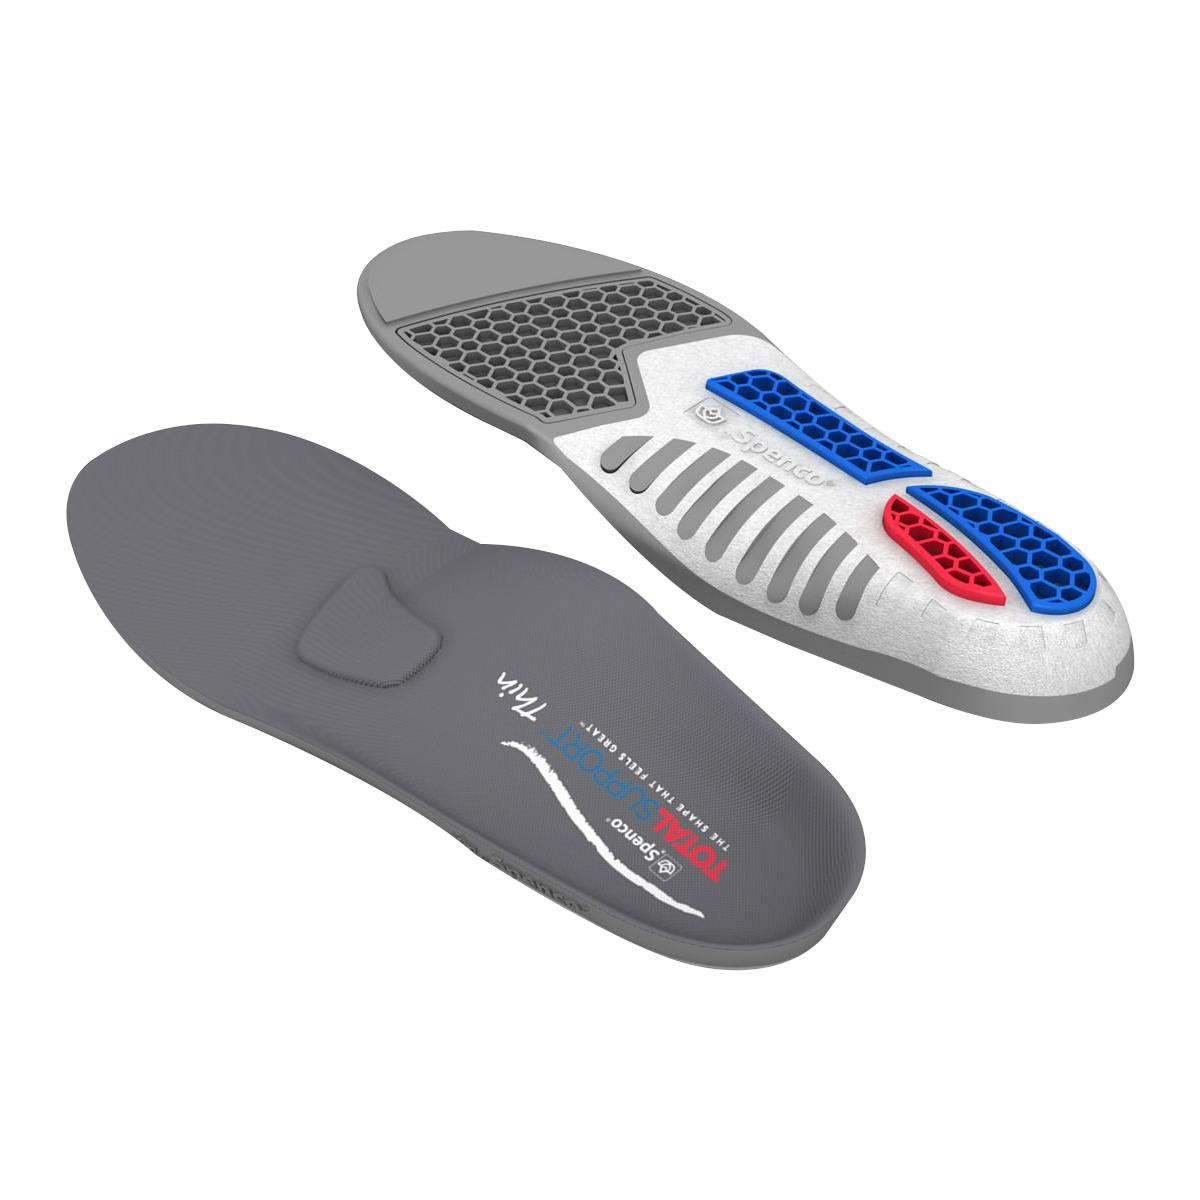 Spenco Footcare Total Support Max Insoles 1 Pair